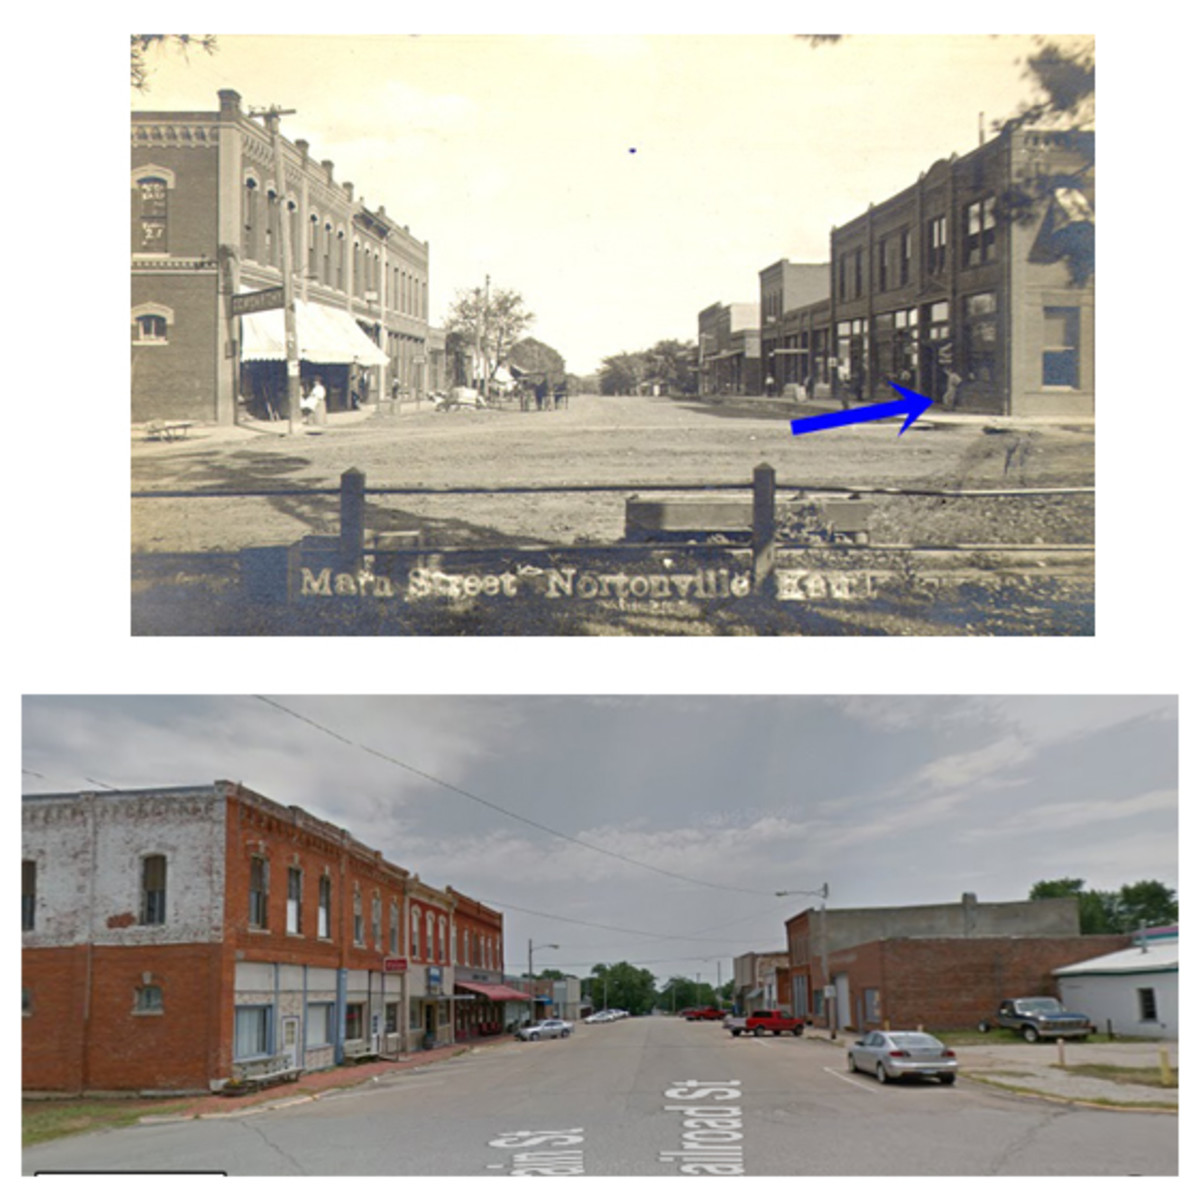 TOP: This vintage photo shows Main Street in Nortonville, Kan., circa 1915. The First National Bank block is at right foreground, marked with an arrow. This block also housed Nortonville's post office and a bakery. Sadly, this majestic block was destroyed by fire in 1936. BOTTOM: This photo shows the exact street scene on Main Street in Nortonville as illustrated in the 1915 photo. Note that a vacant lot sits where the First National Bank block once stood.